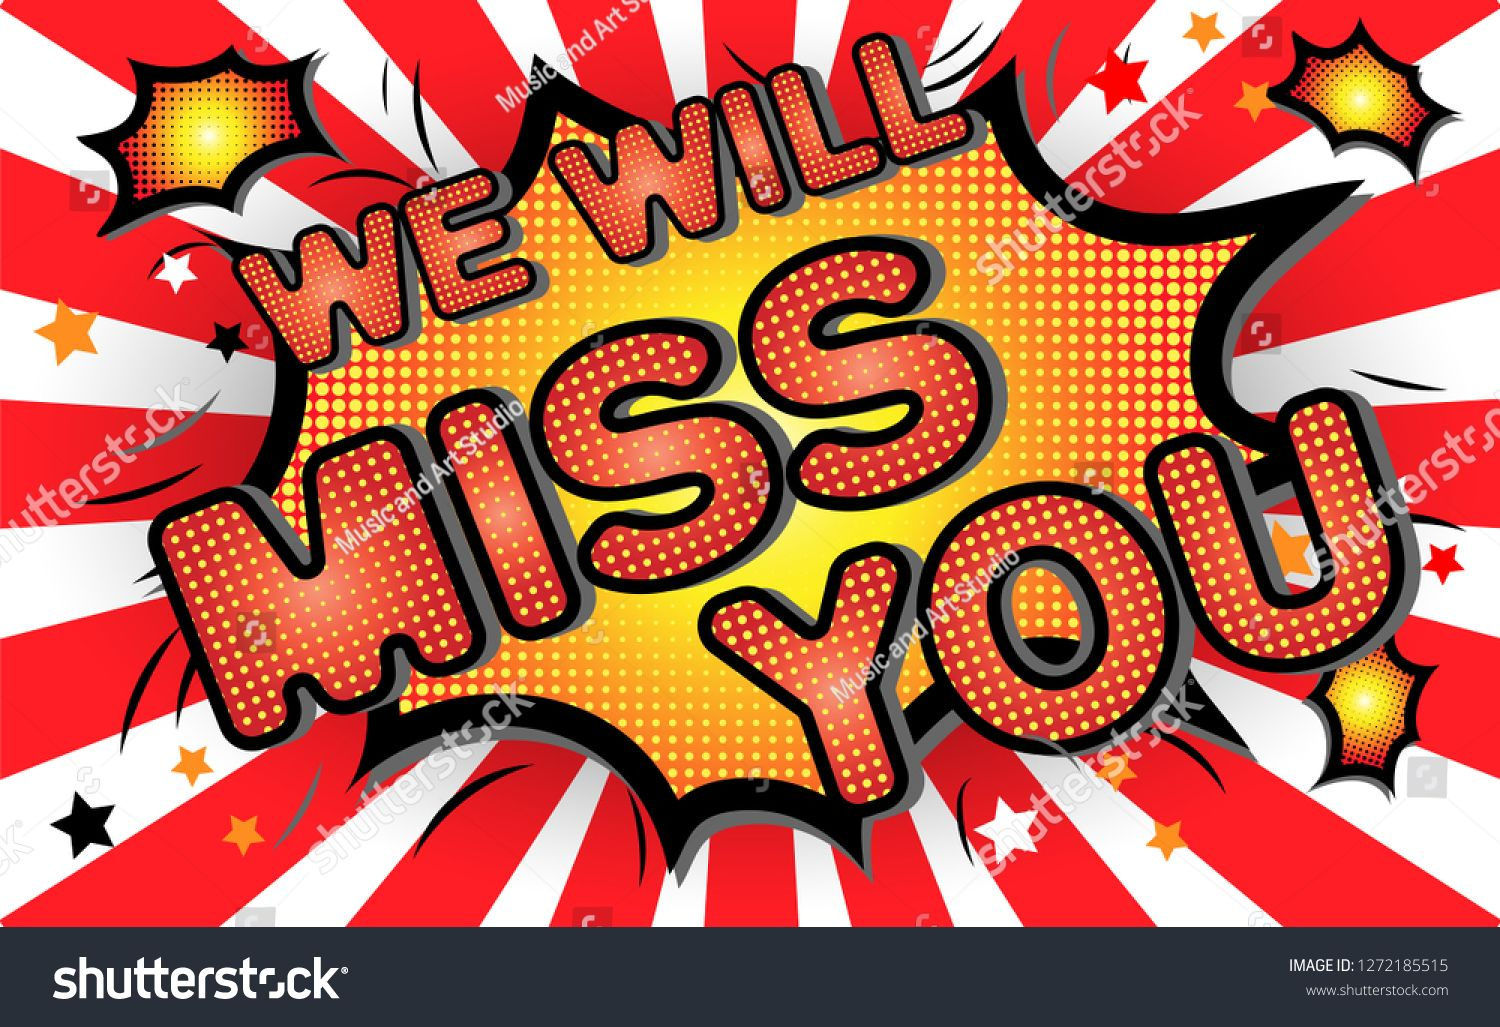 Farewell Party Template We Will Miss You Text Design Pop Art Comic Style Colorful Background For T Shirt Print Party Background Pop Art Comic Banner Printing